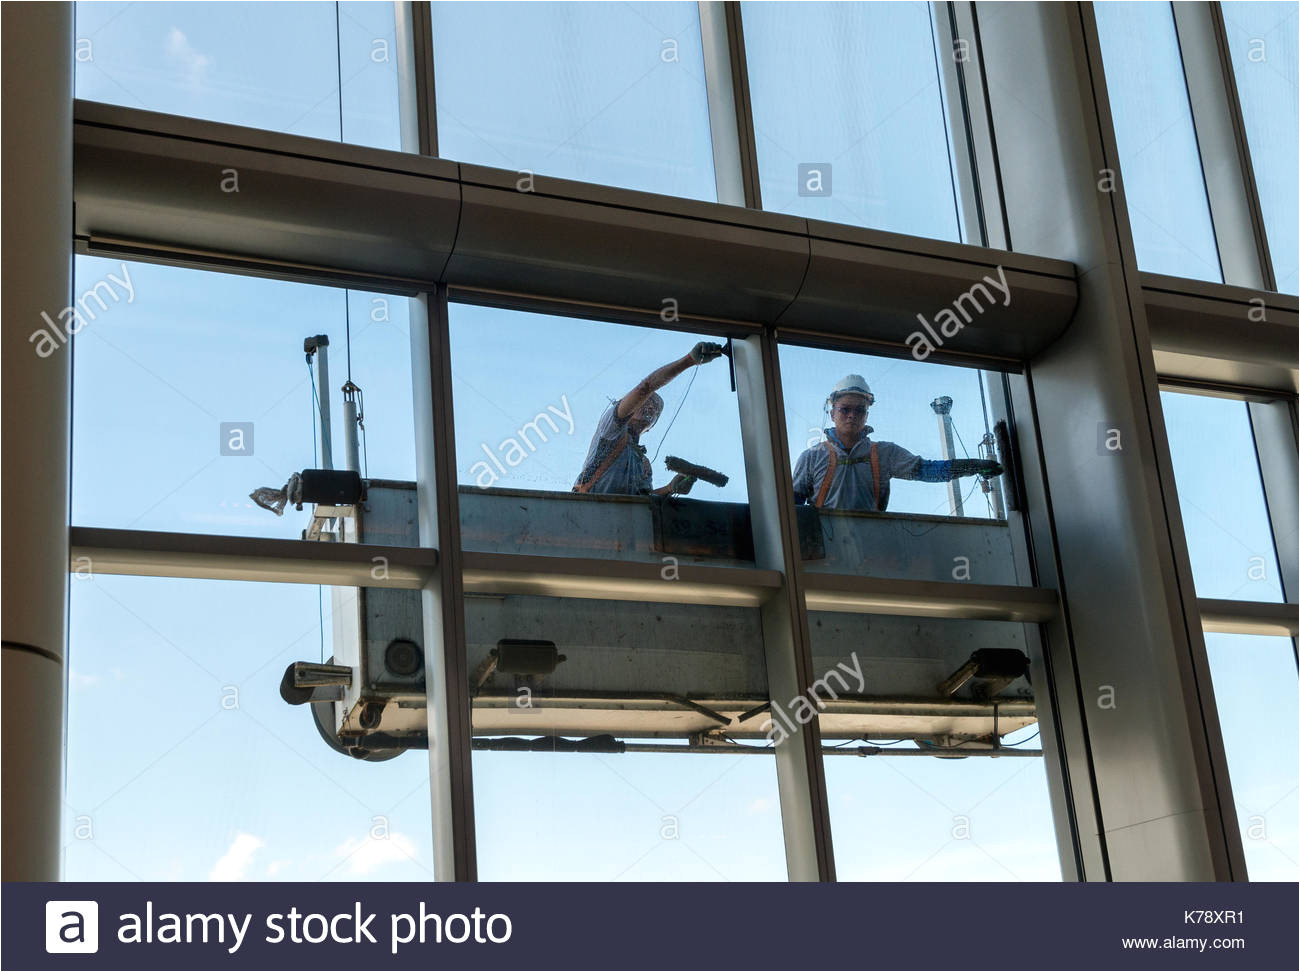 high rise window cleaning at taikoo hong kong jayne russell alamy stock photo